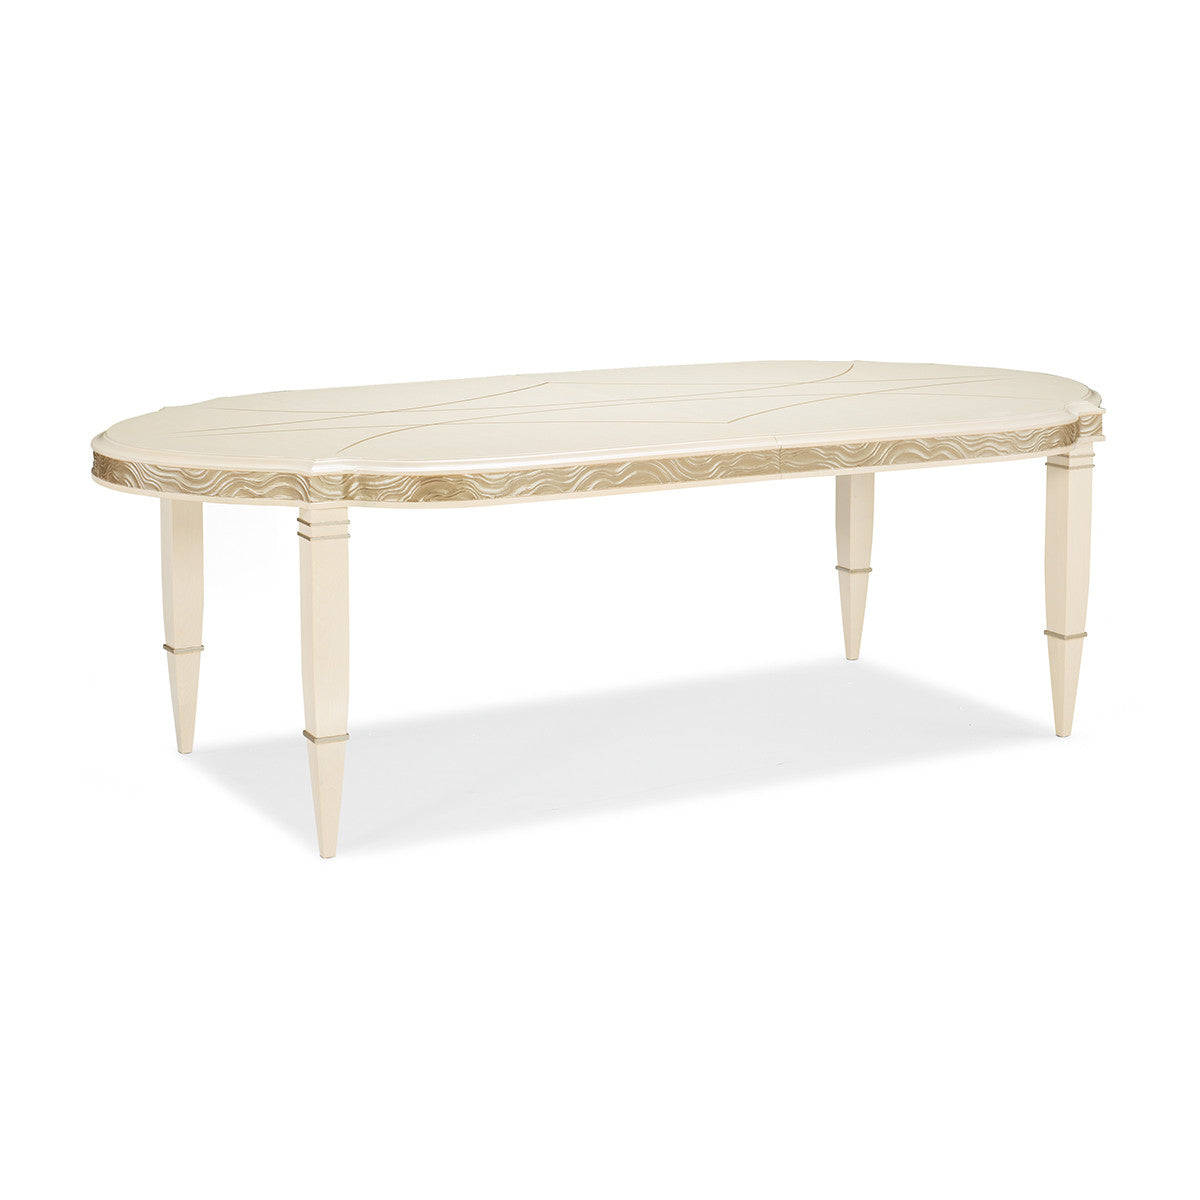 DEVON EXTENSION DINING TABLE